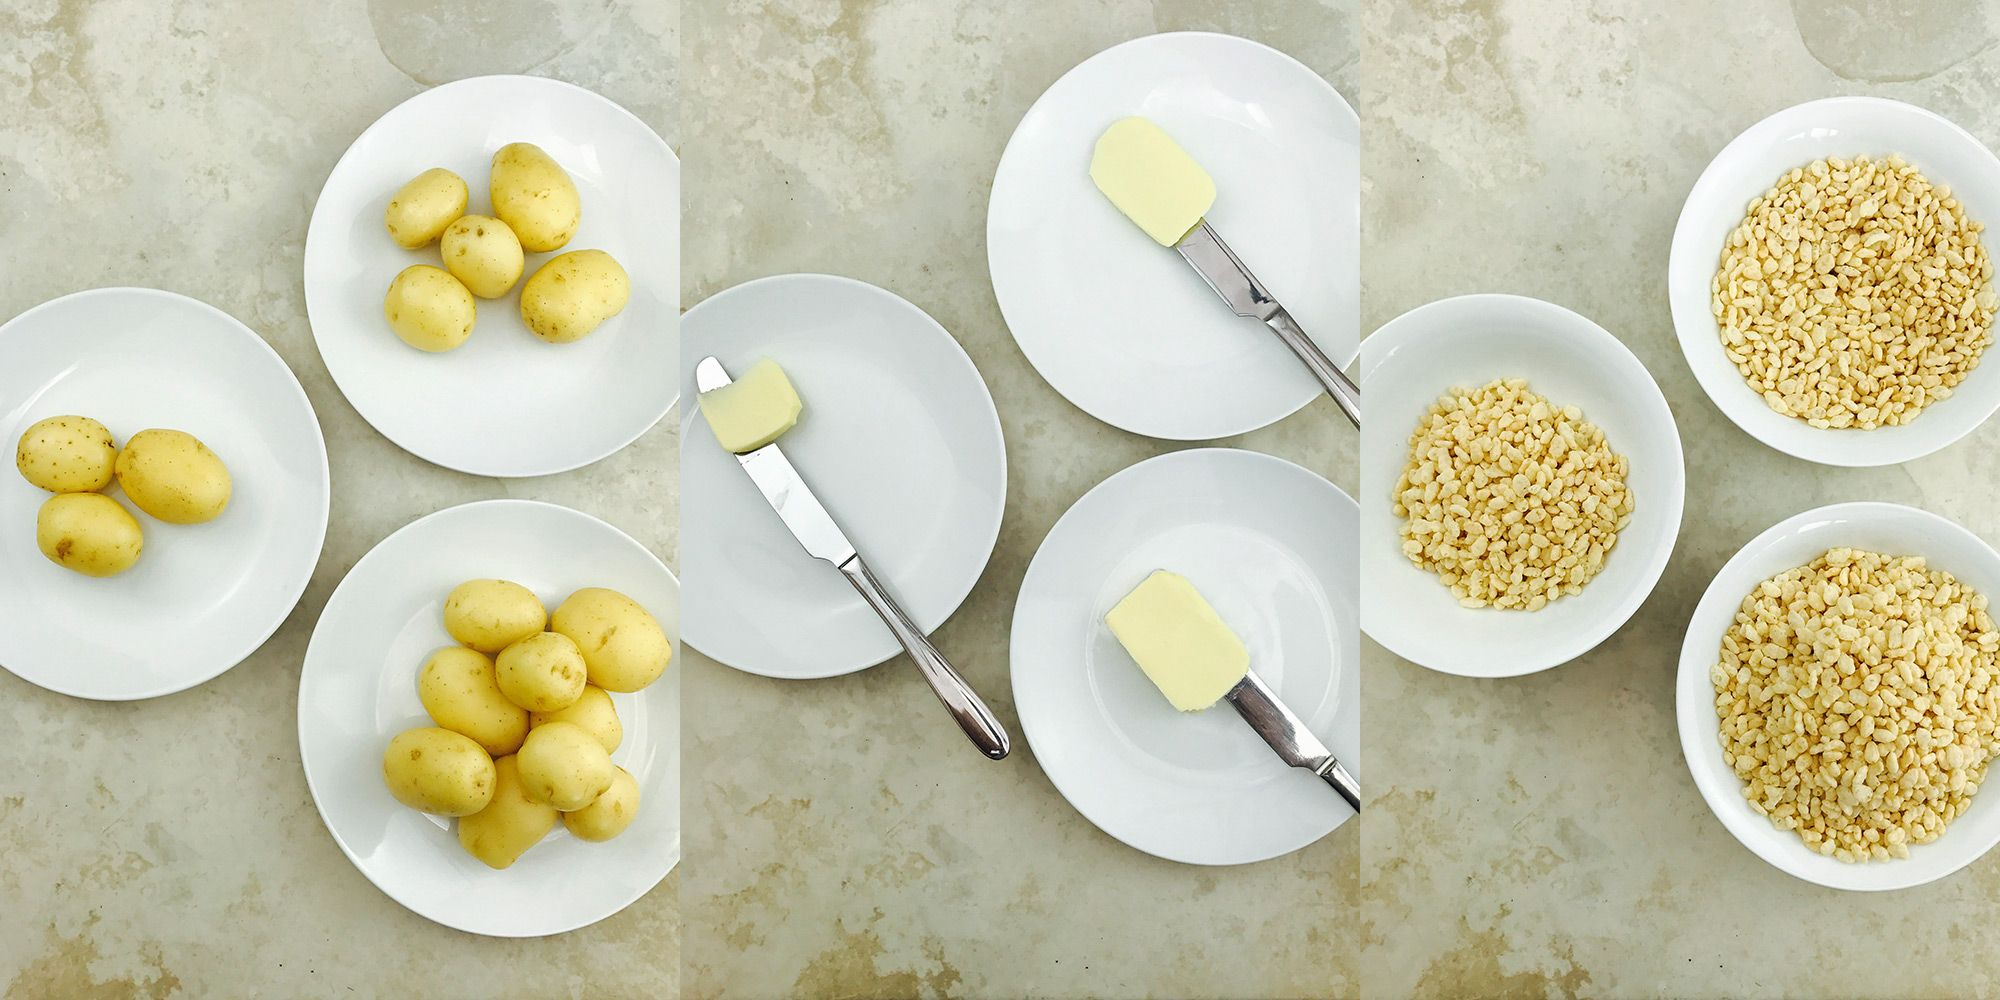 Portion sizes: how much food per person should we actually be eating?